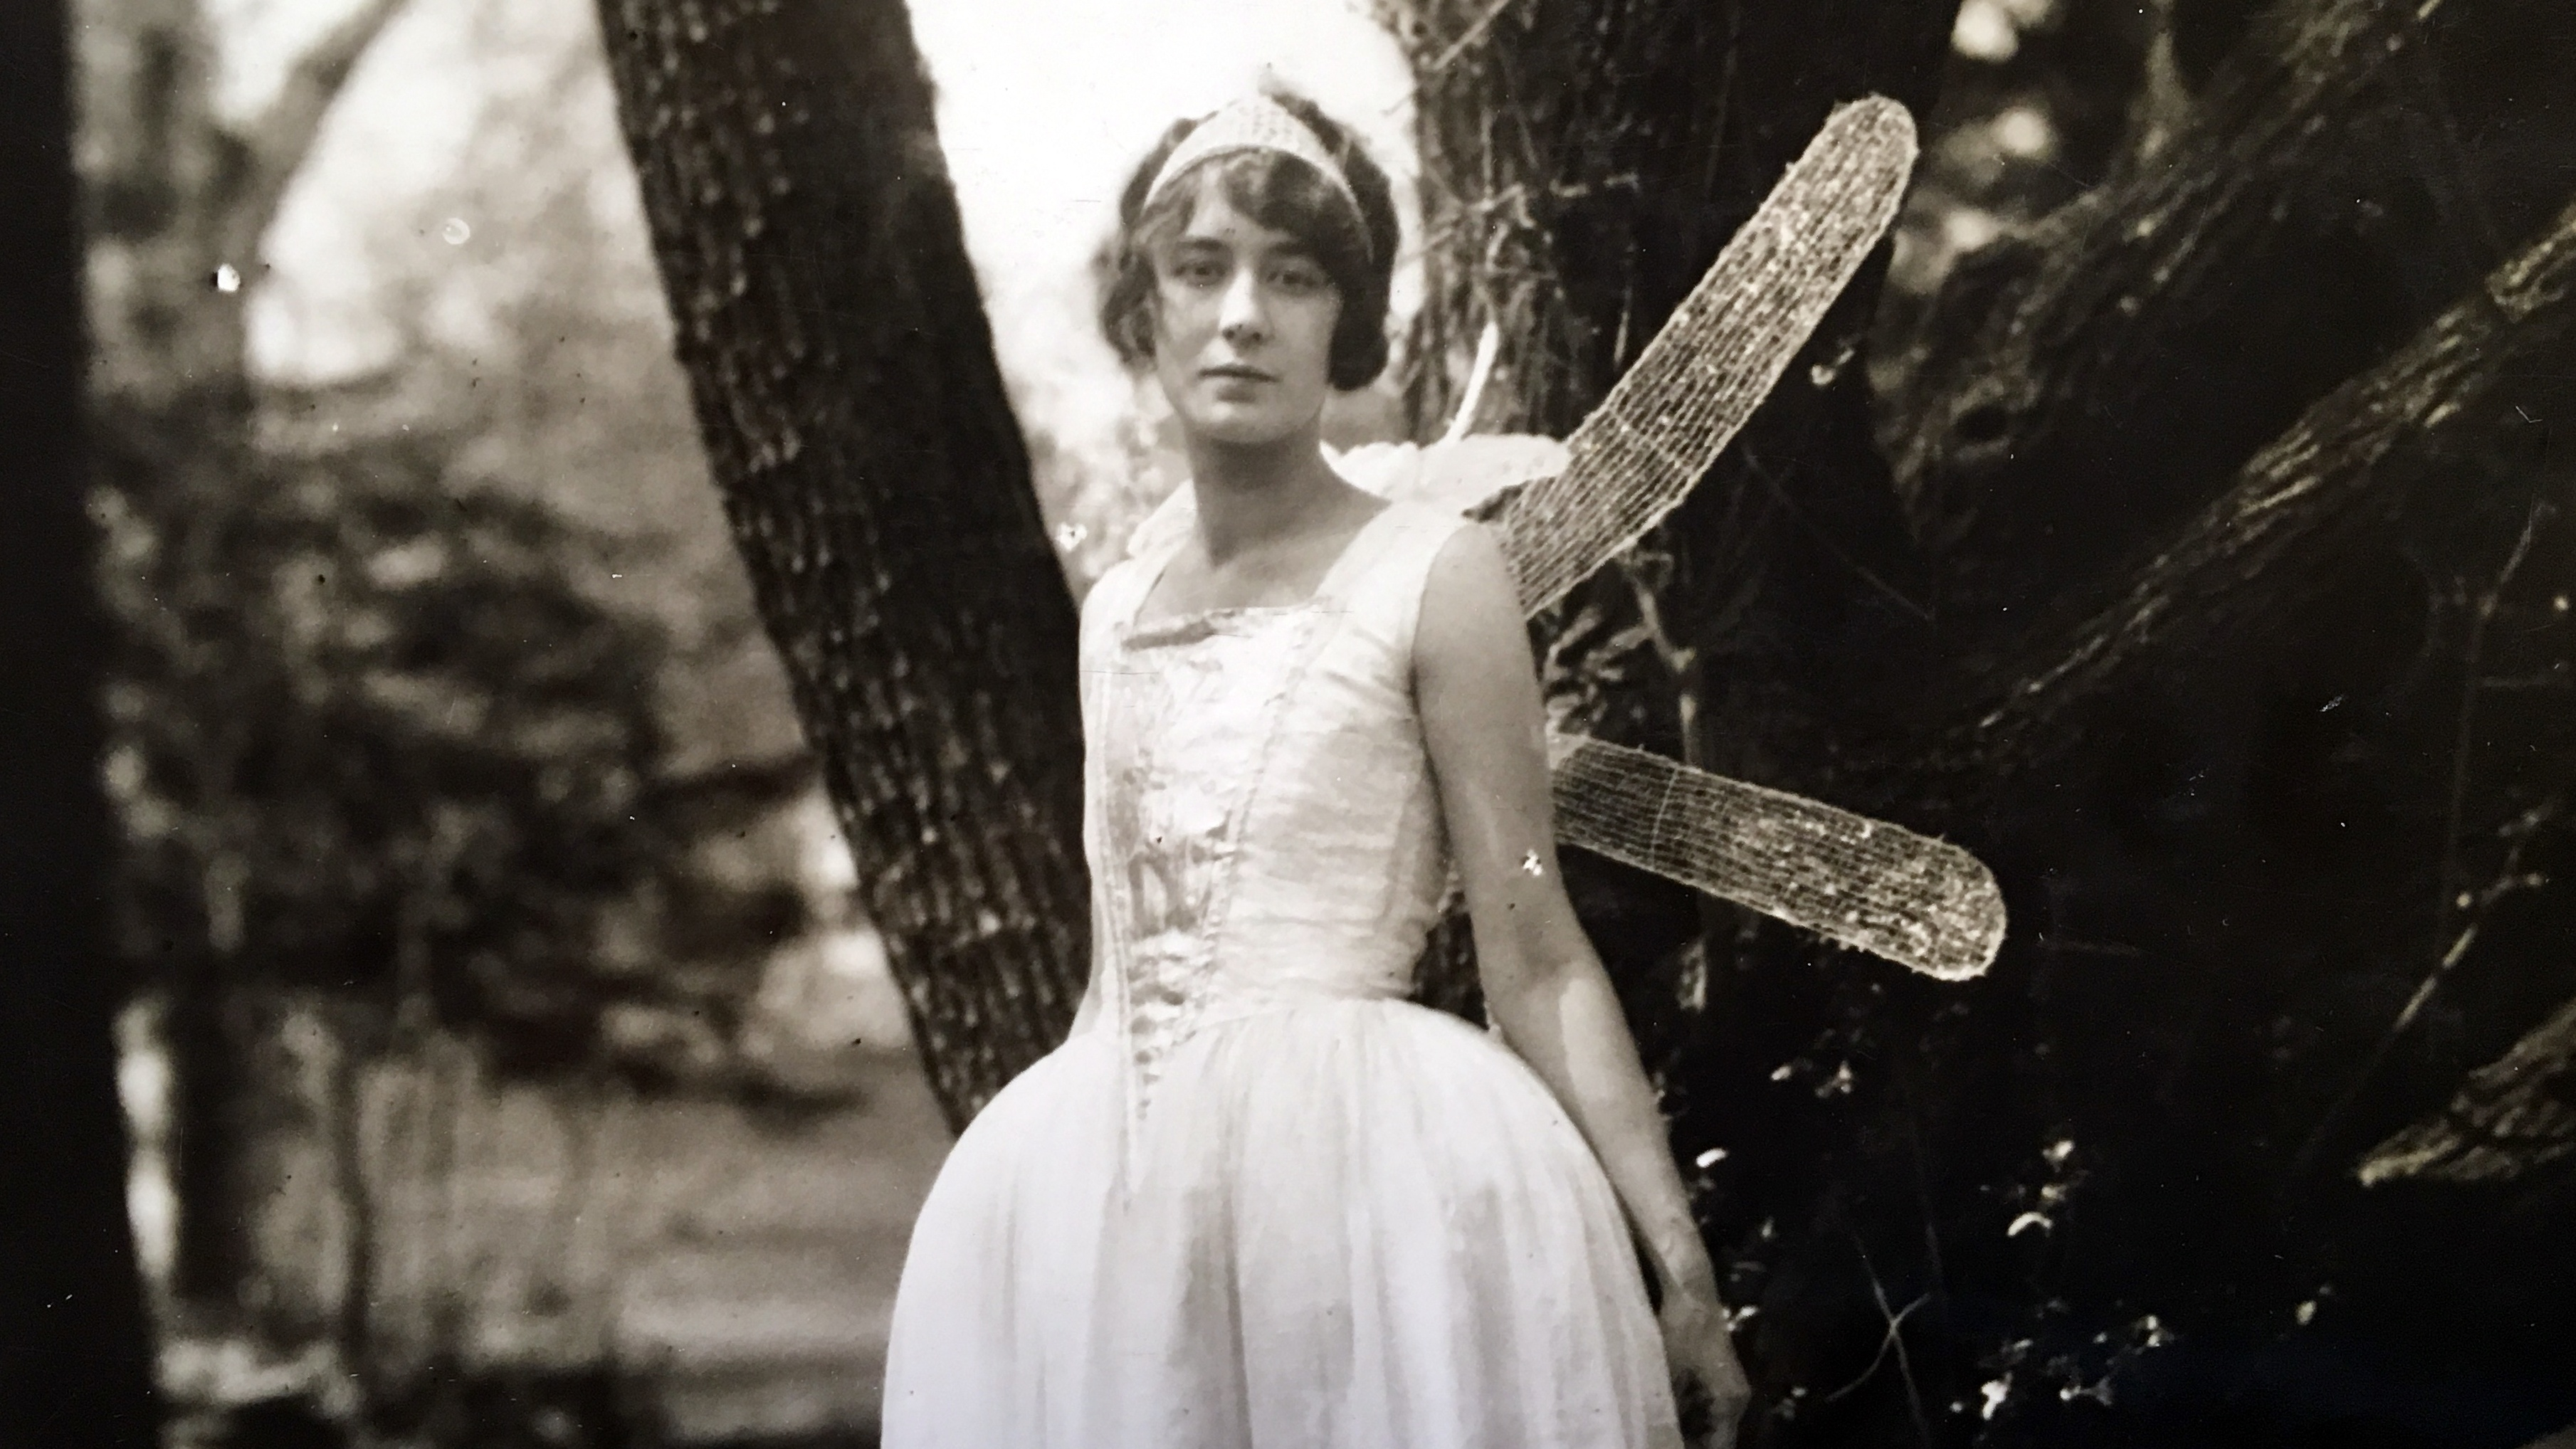 May Day queen, 1920s